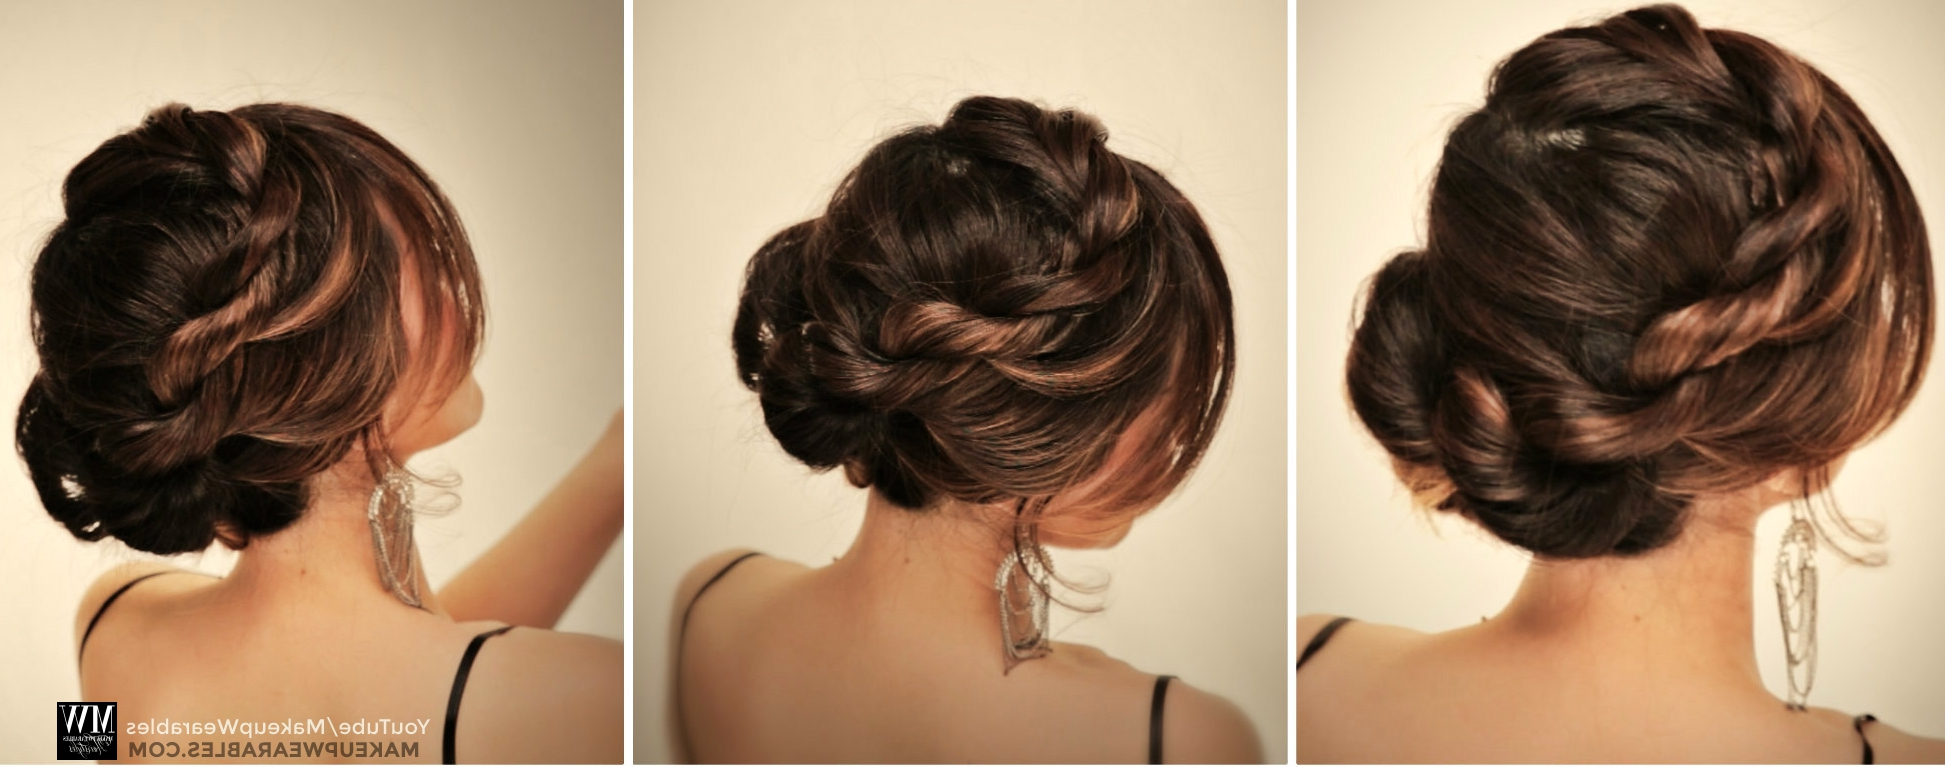 How To: 5 Amazingly Cute + Easy Hairstyles With A Simple Twist In Short Messy Hairstyles With Twists (View 14 of 20)